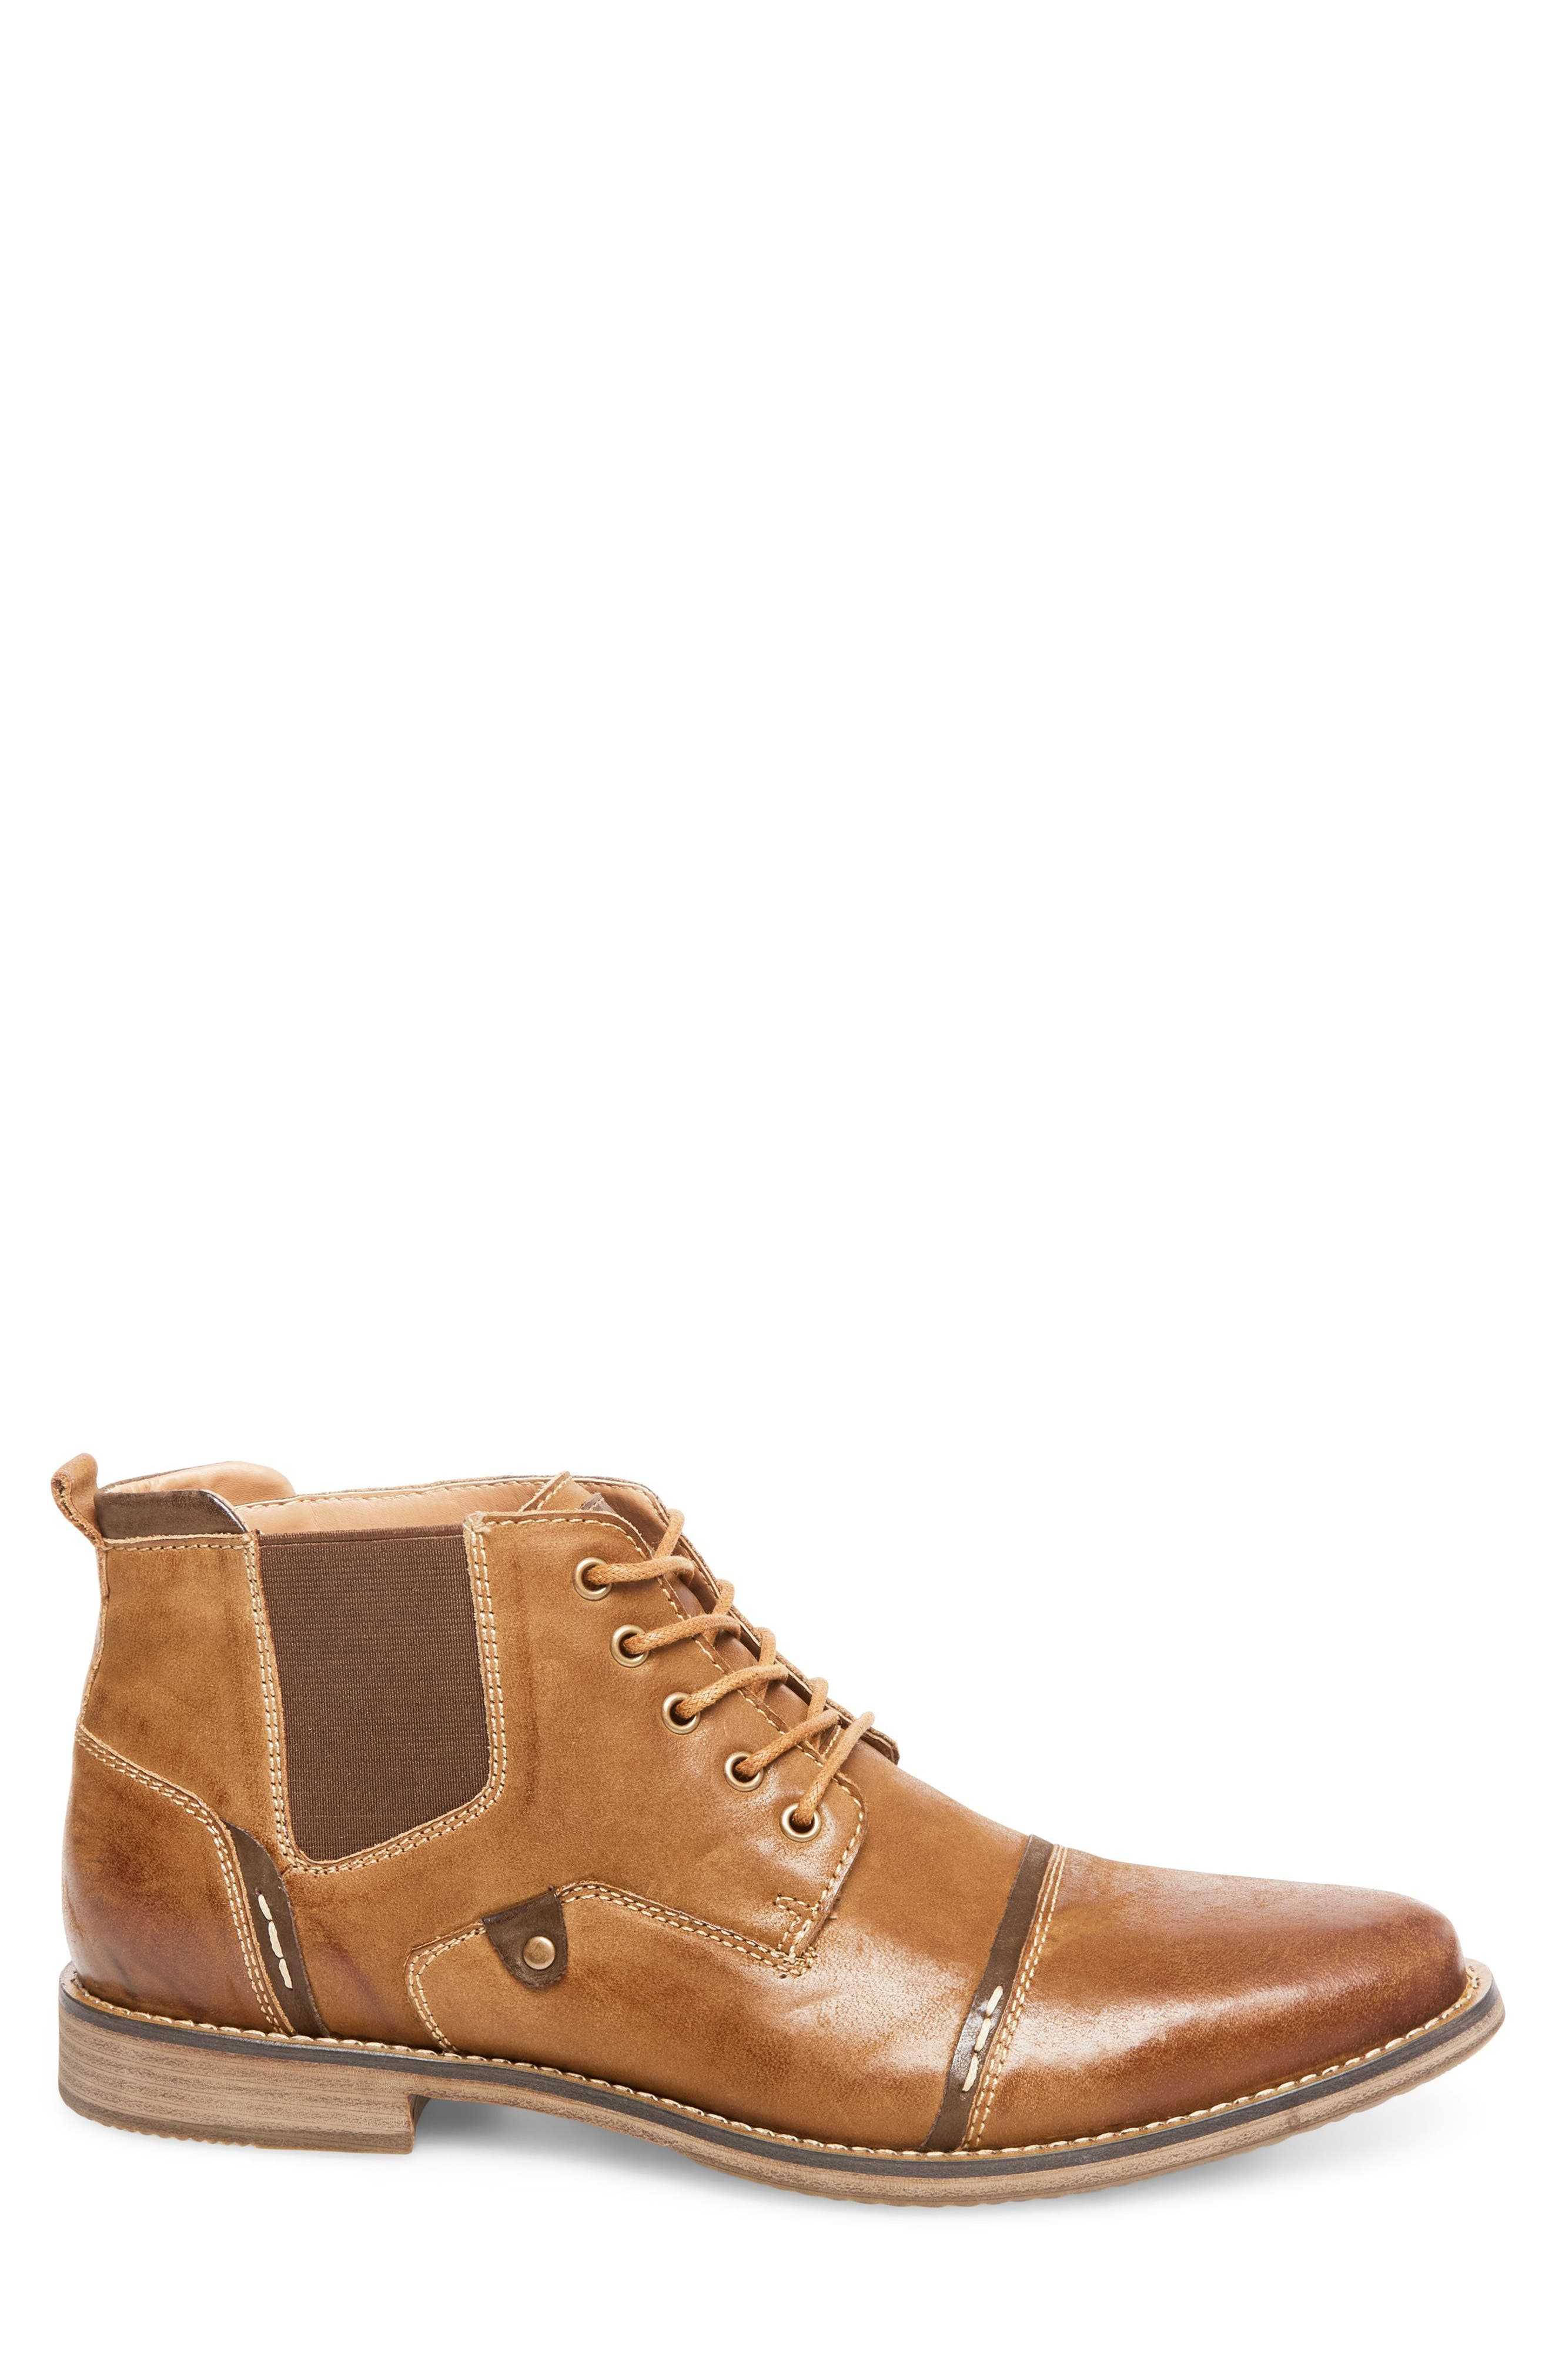 Alternate Image 3  - Steve Madden Proxy Cap Toe Boot (Men)